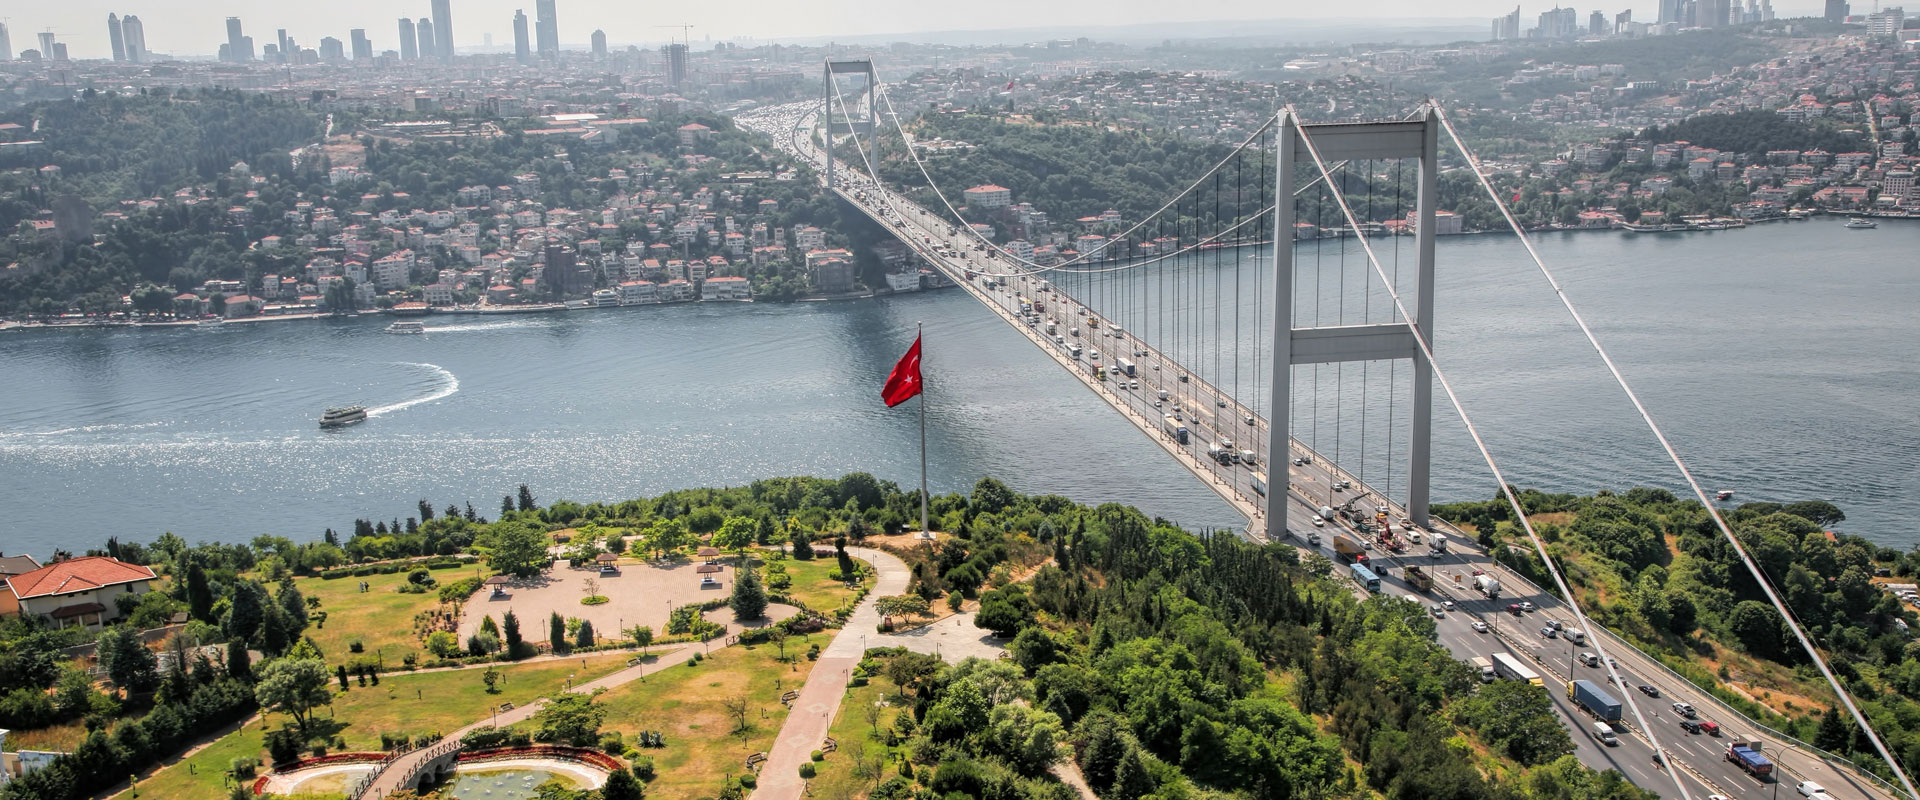 PACKAGE 4 Istanbul City Tour